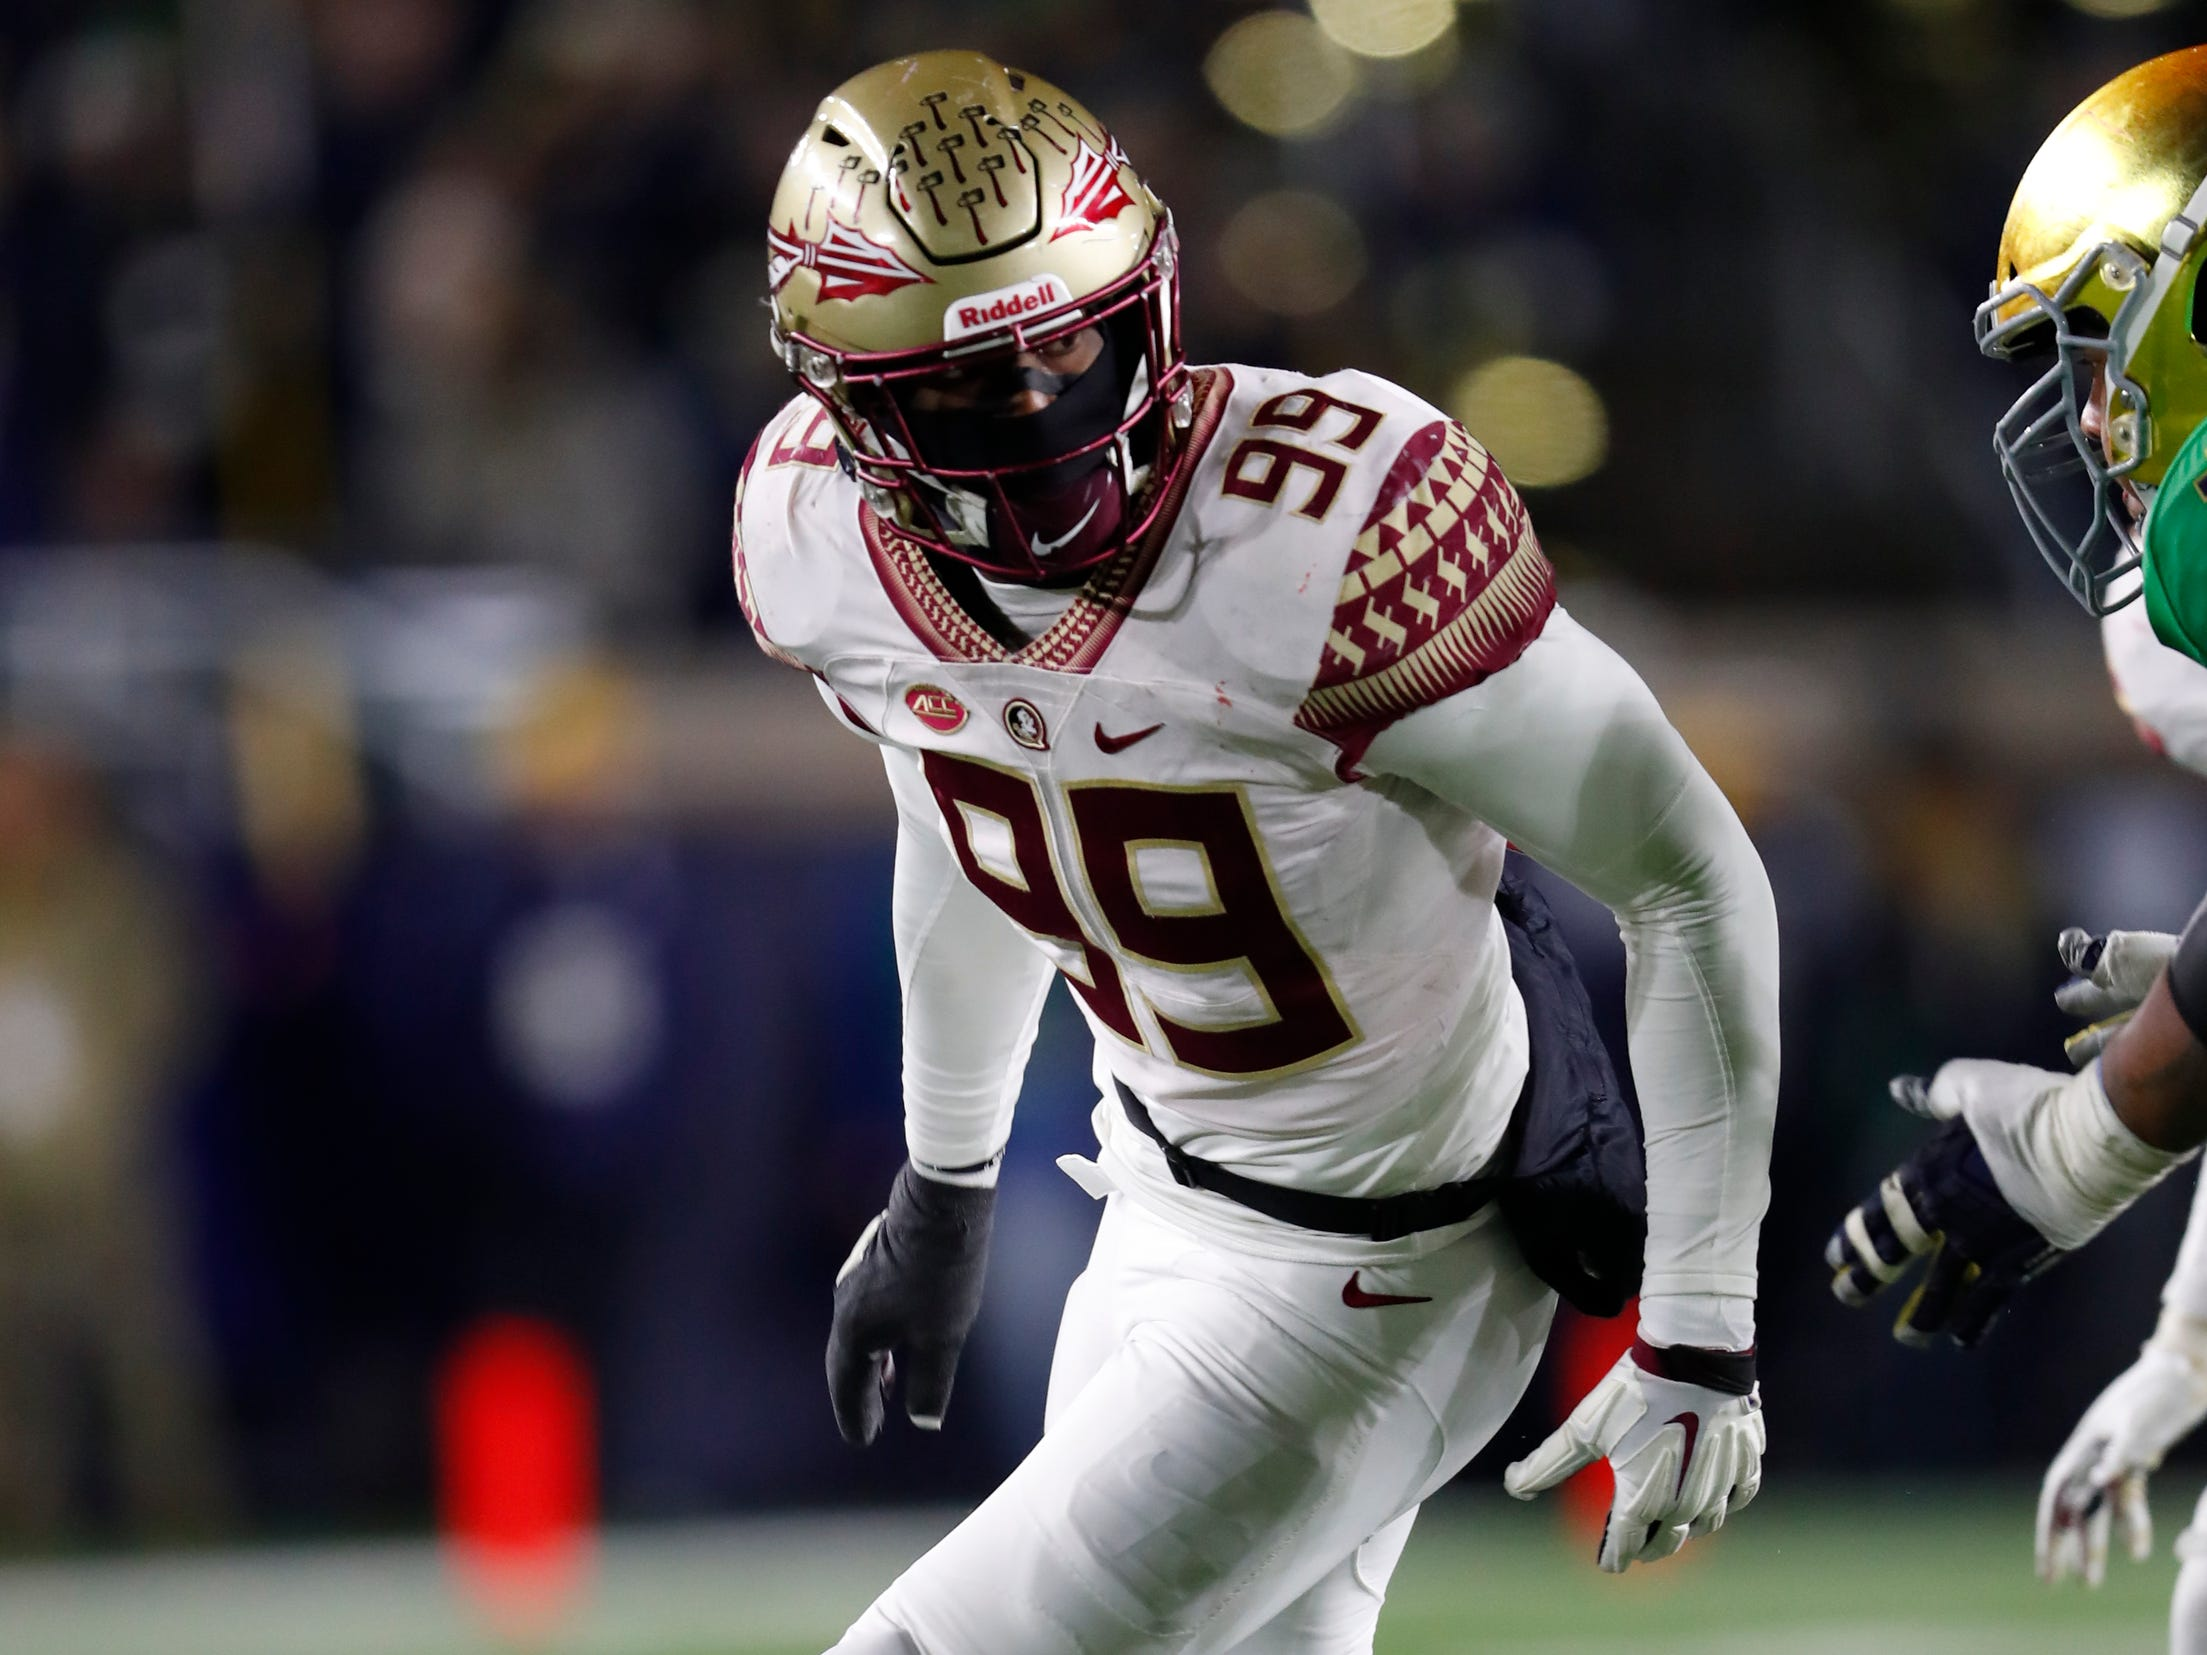 28. Brian Burns, LB, Florida State: It will be interesting to see what the scale says when Burns steps on it at the combine. The 6-foot-5 pass rusher is currently listed at 231 pounds, which is uncomfortably low for the physical responsibilities of an edge rusher at the professional level. But you can't knock the production, which includes 10 sacks and three forced fumbles.